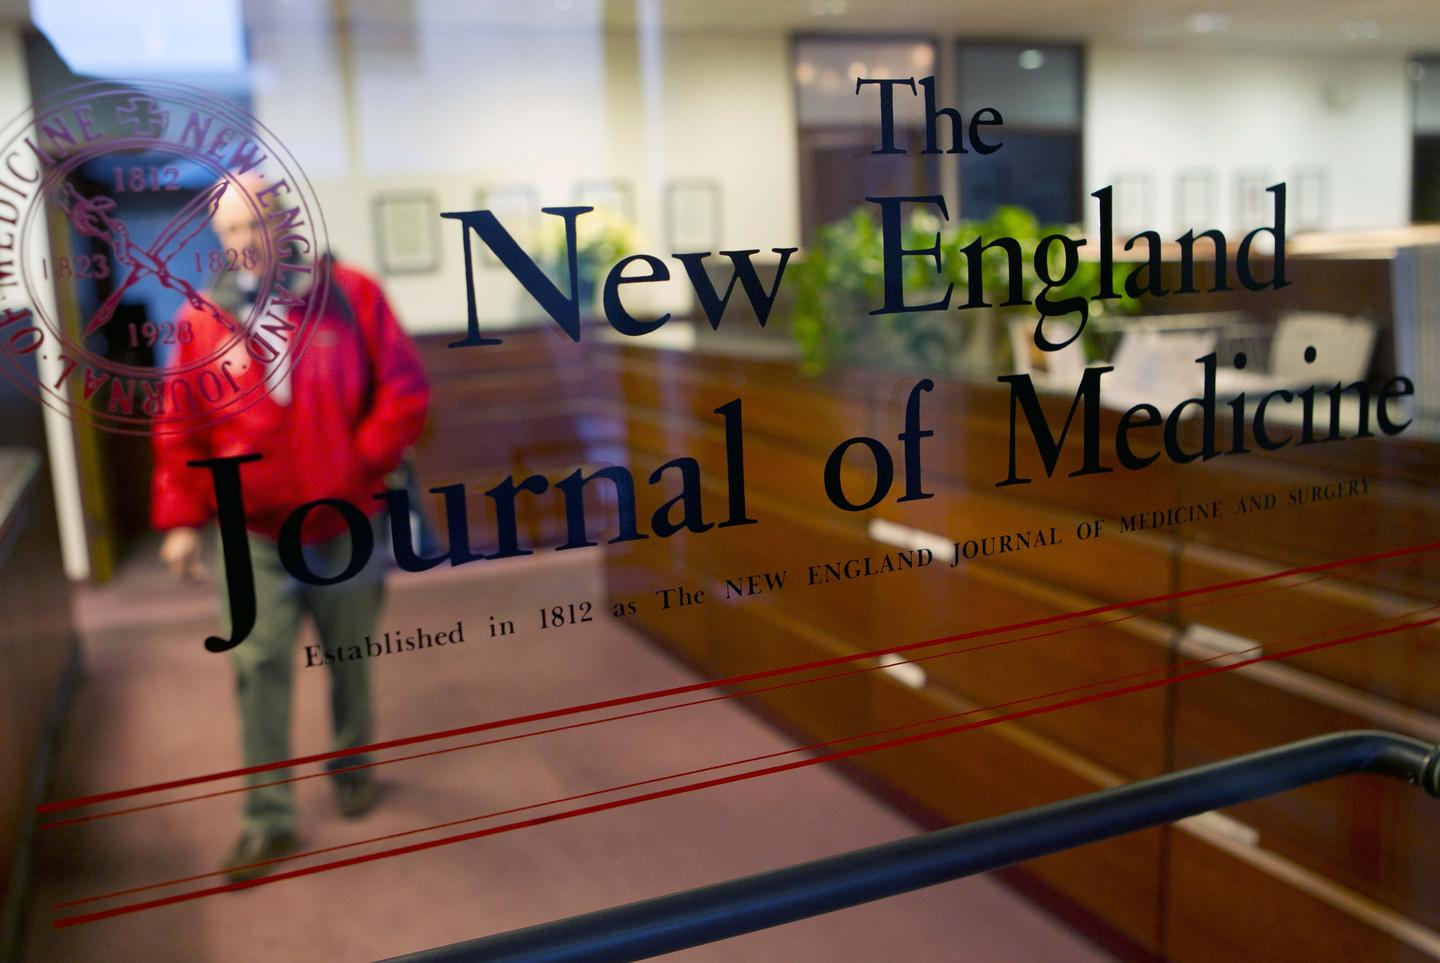 Even Medical Journals are Plagued With PC Jargon